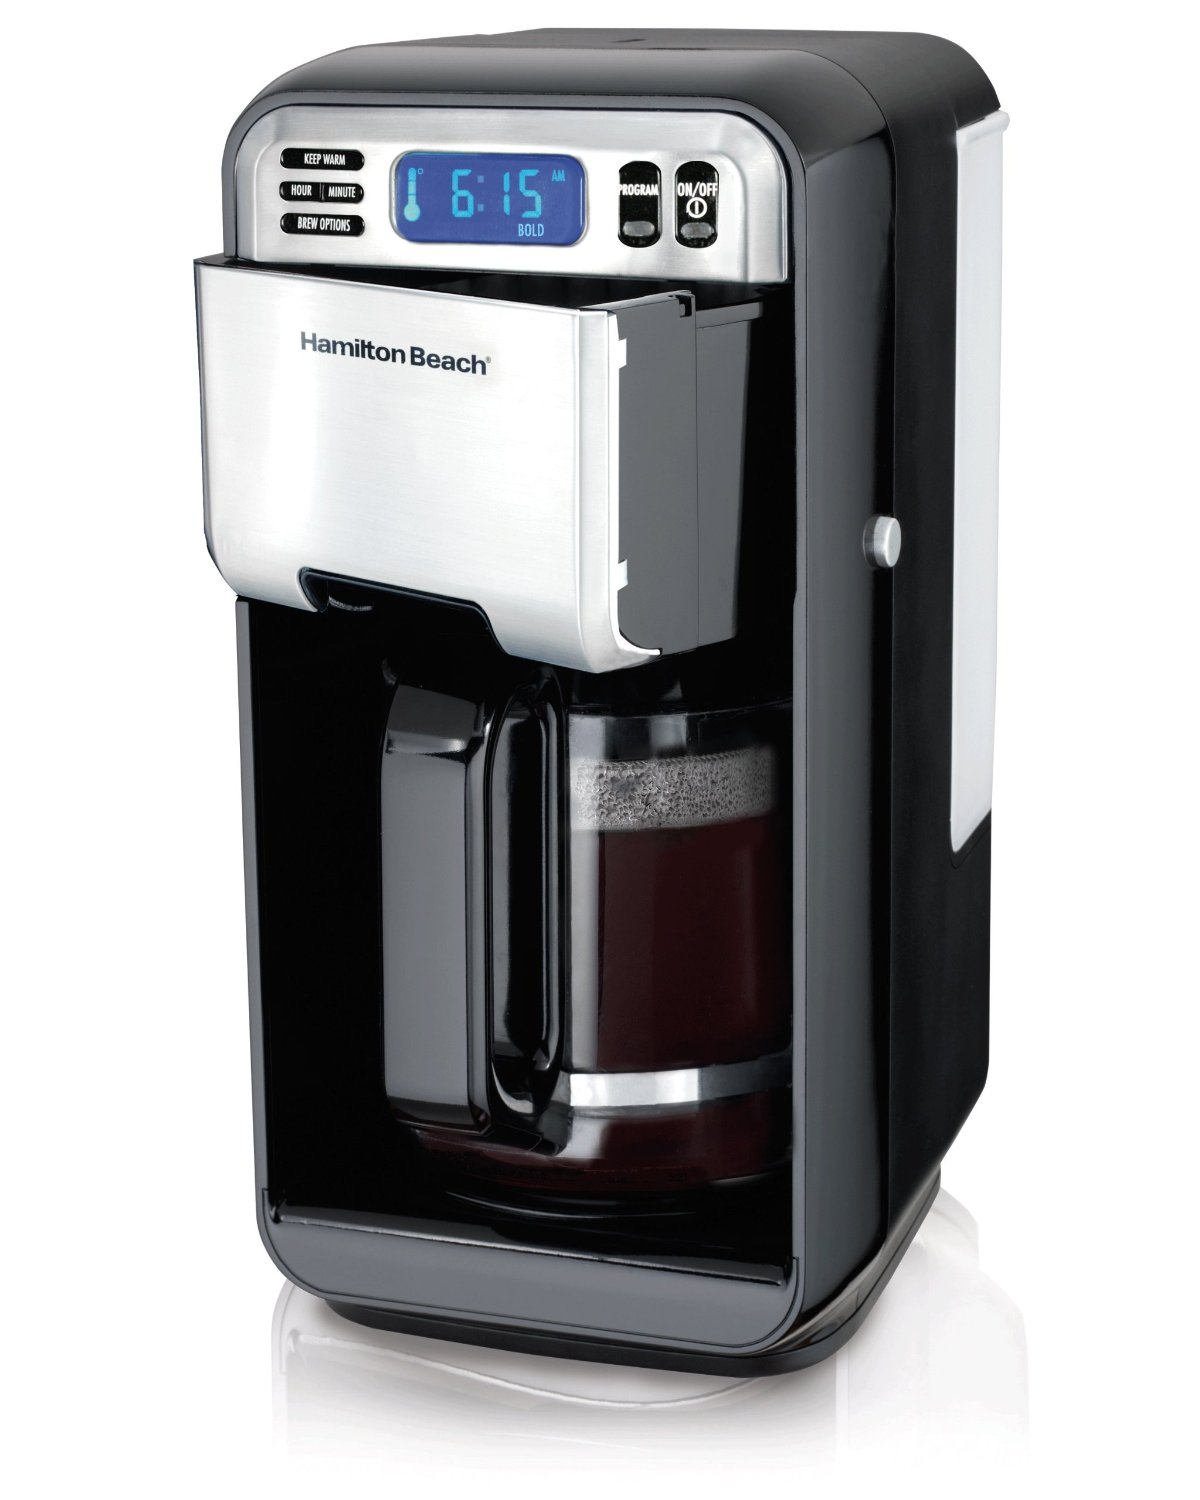 Hamilton Beach 12 Cup Digital Coffee Maker Stainless Steel 46201